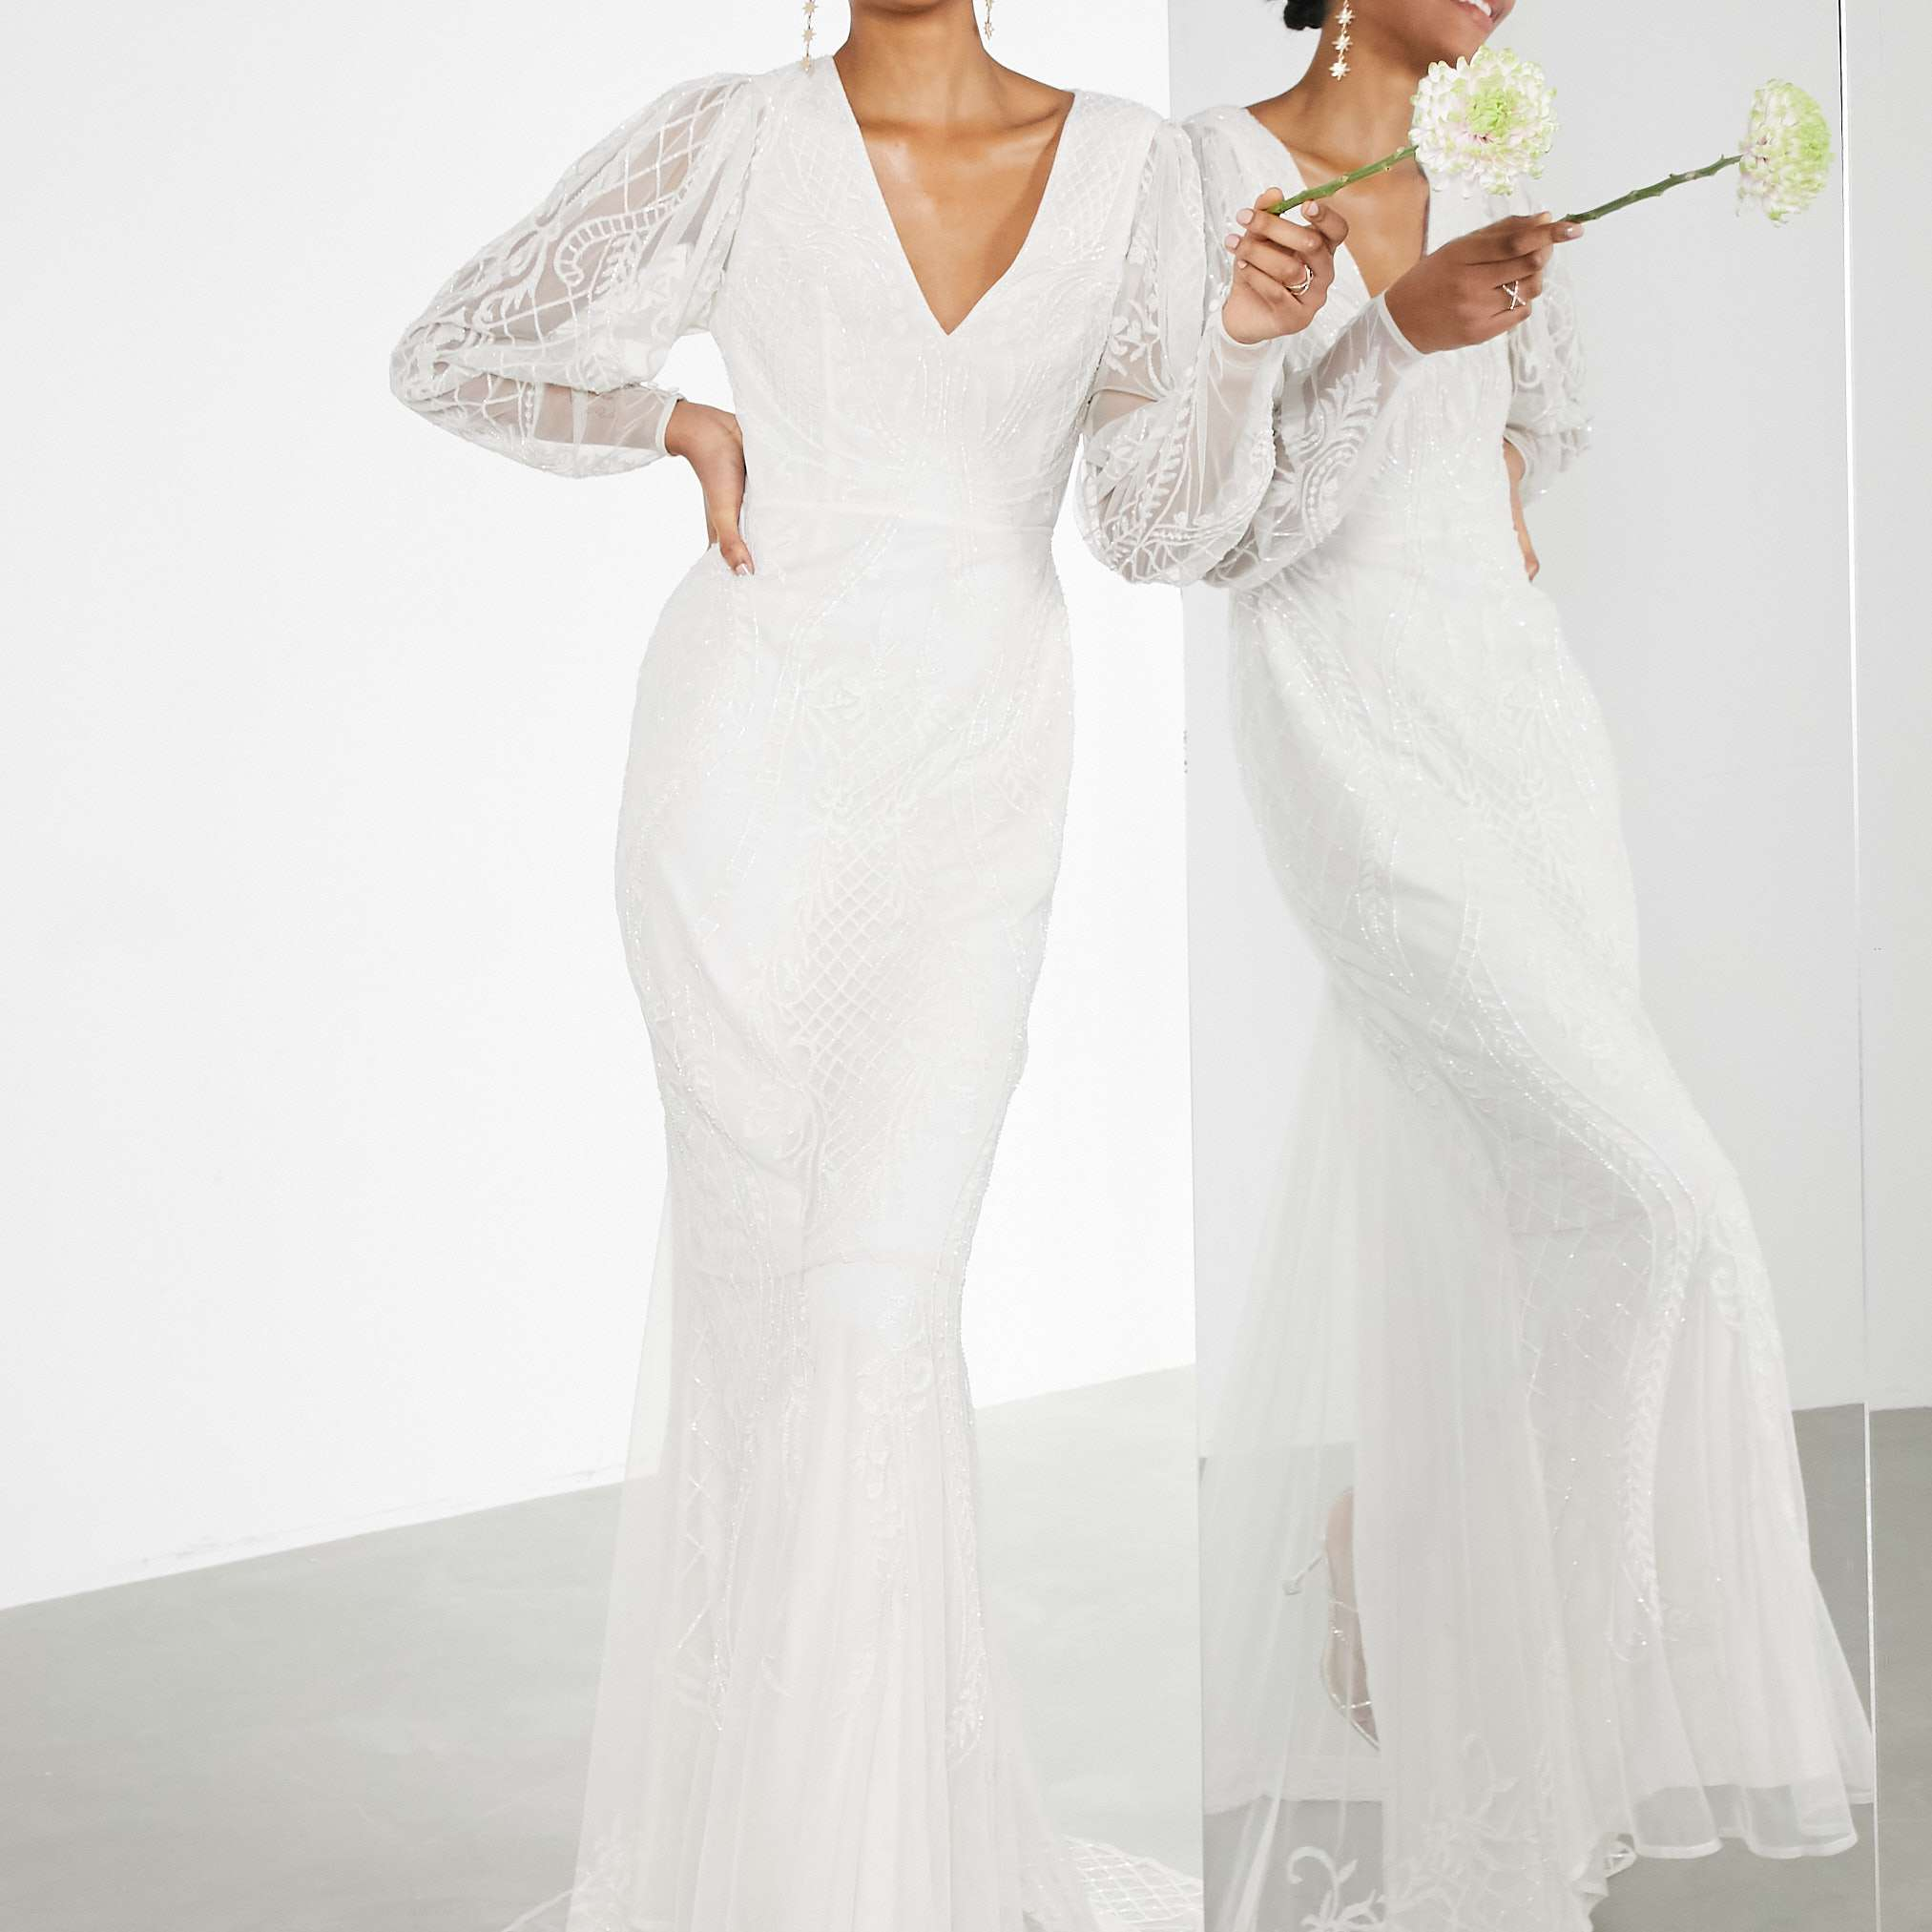 ASOS EDITION Lucy Placement Beaded Wedding Dress